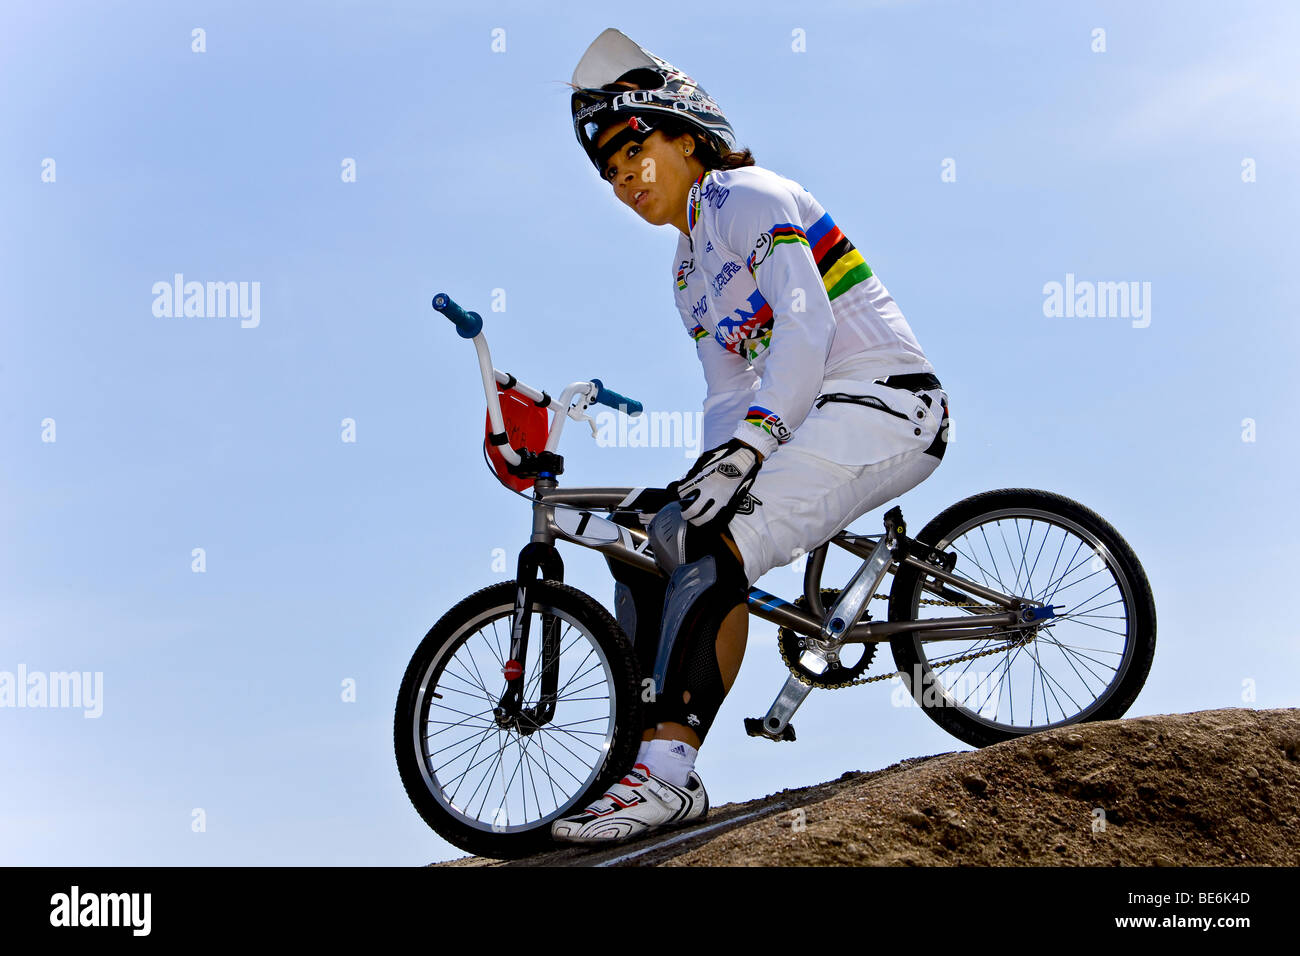 Shanaze Reade from Great Britain, winner of Elite Women's race at the BMX Supercross World Cup in Copenhagen, - Stock Image